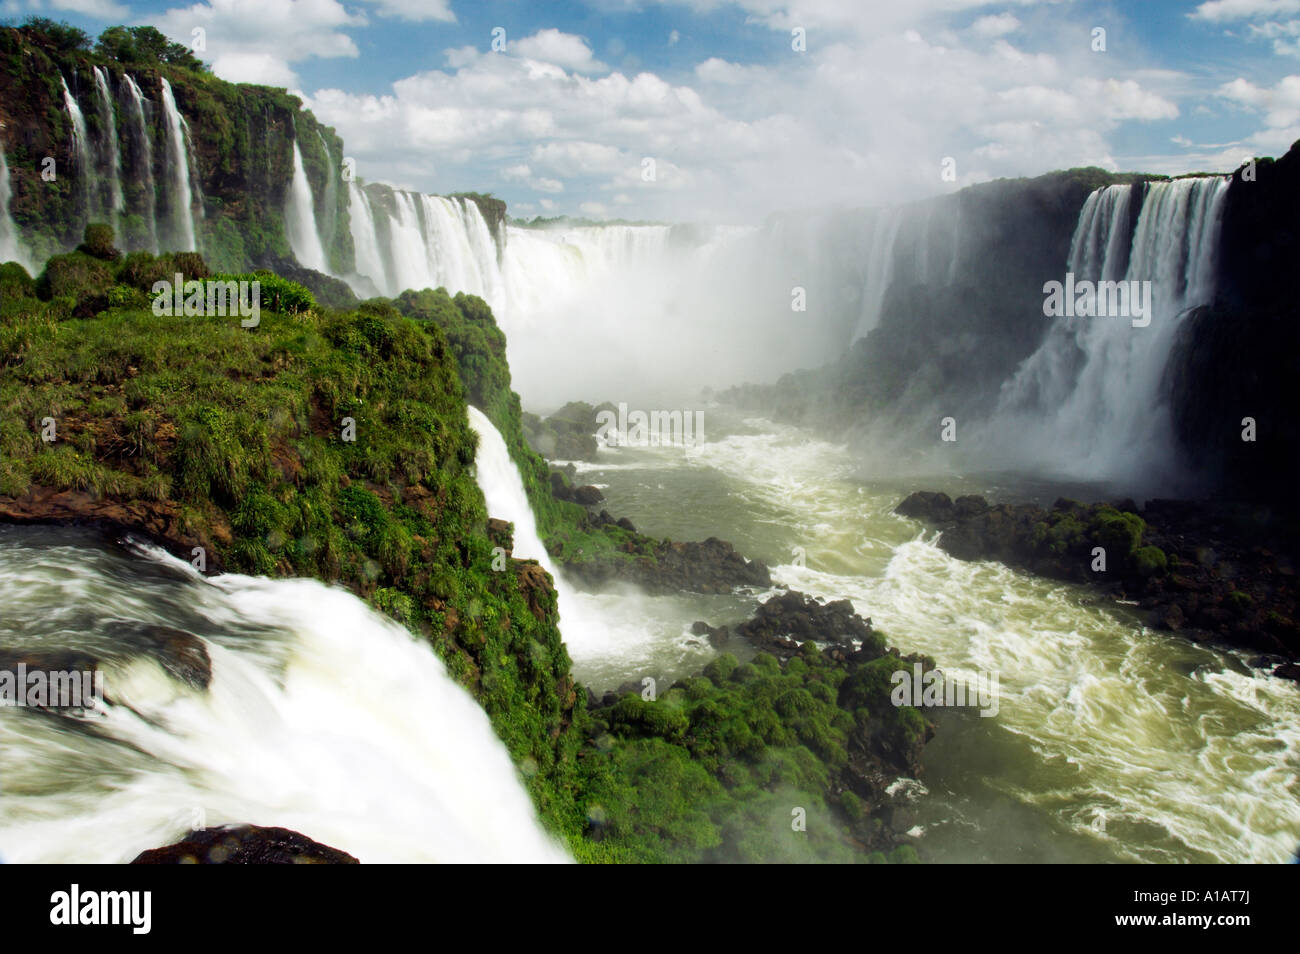 The Iguassu Falls Devils Throat and the Iguassu river gorge as viewed from the Brazilian side - Stock Image